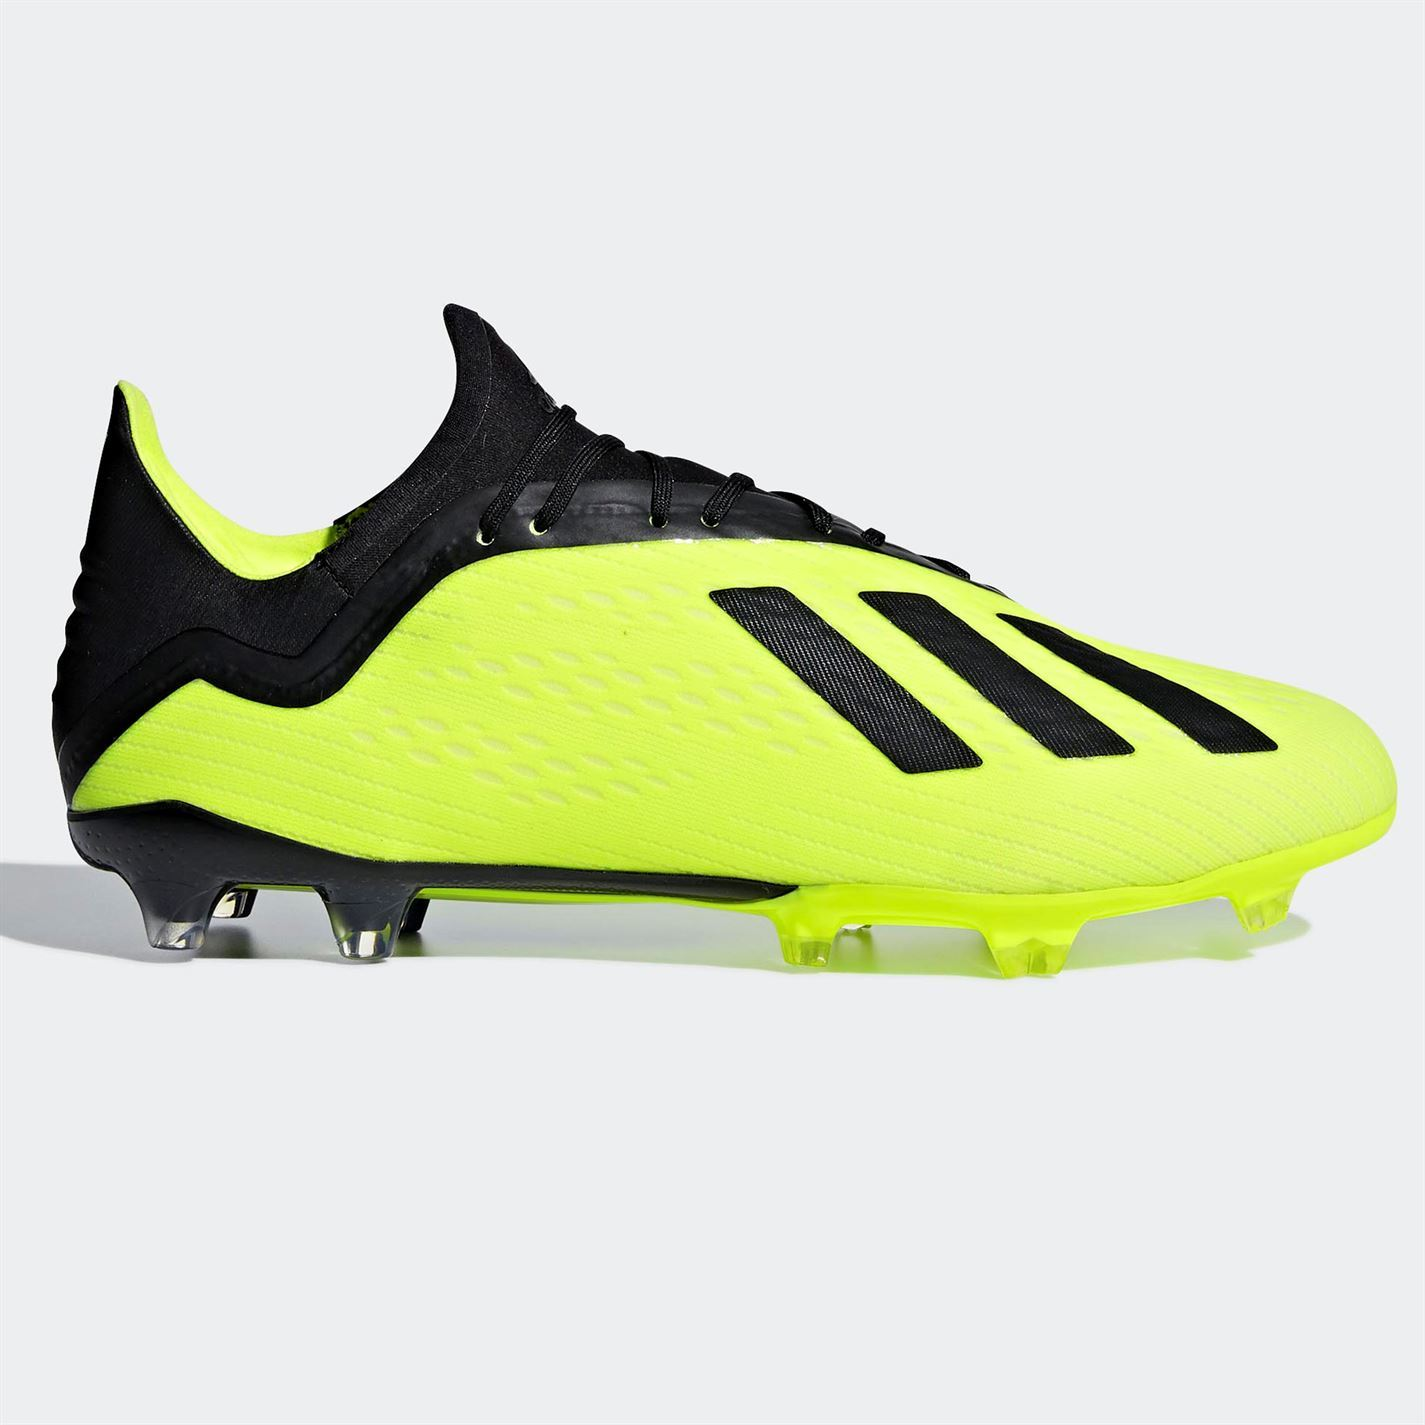 7f7c1502548 adidas X 18.2 FG Firm Ground Football Boots Mens Soccer Shoes Cleats ...